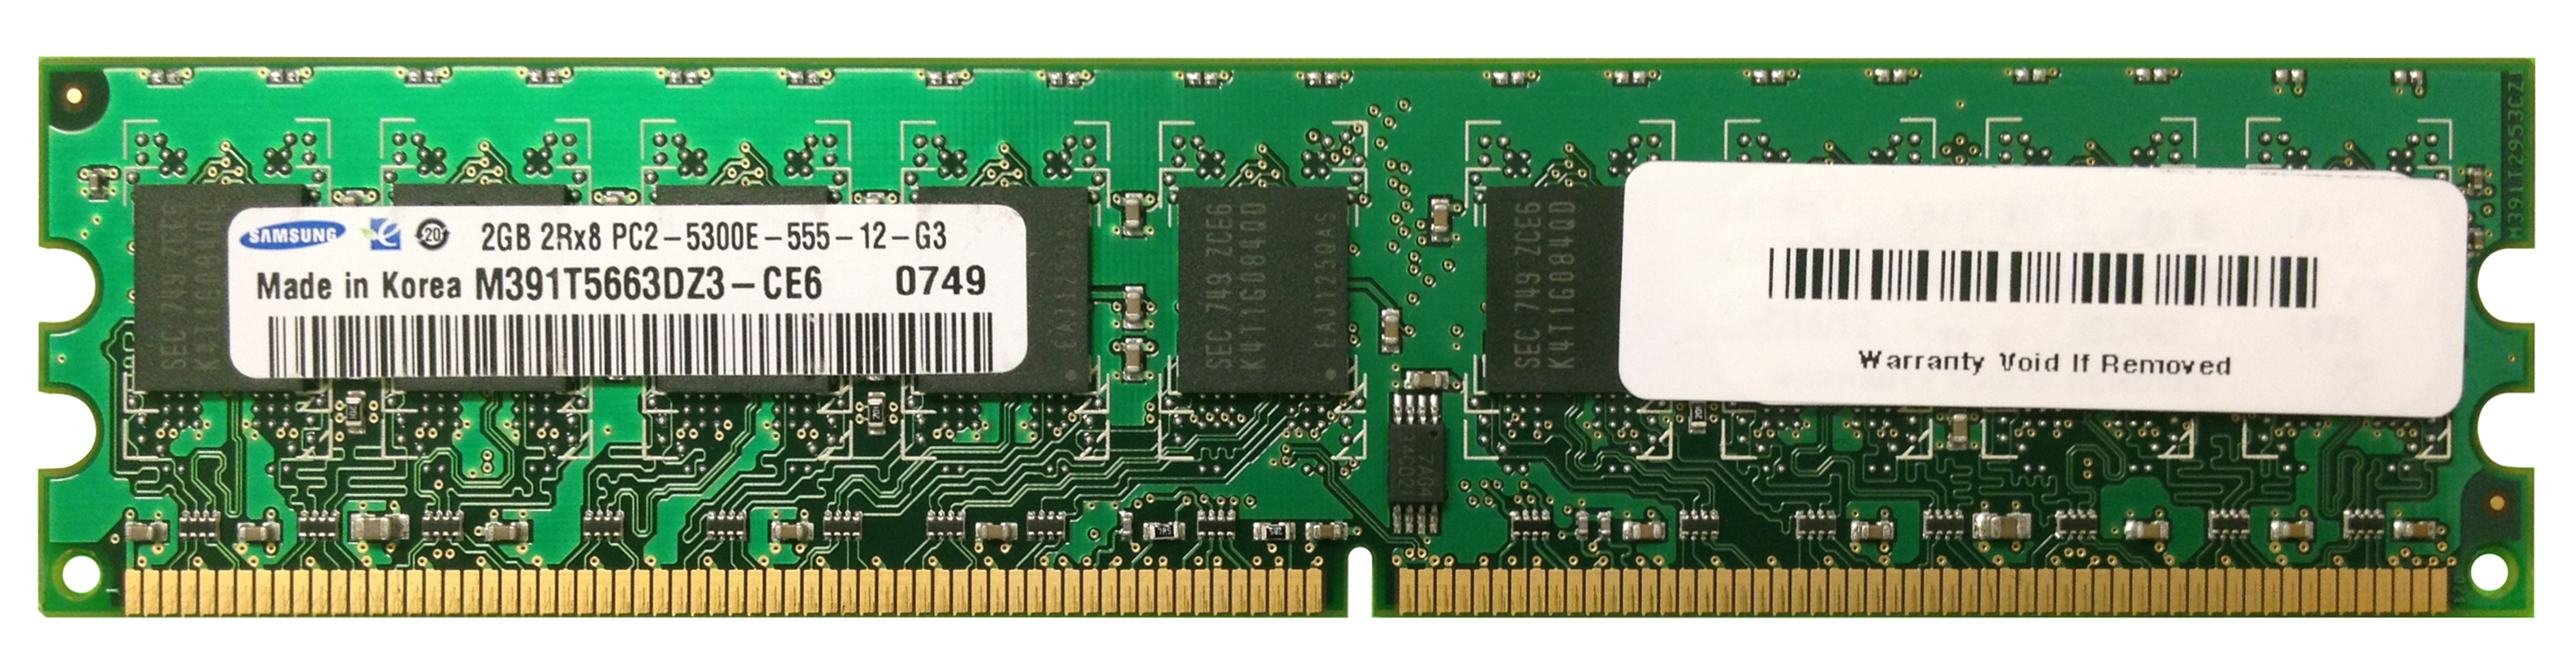 M4L-PC2667D2E5-2G M4L Certified 2GB 667MHz DDR2 PC2-5300 ECC CL5 240-Pin Dual Rank x8 DIMM